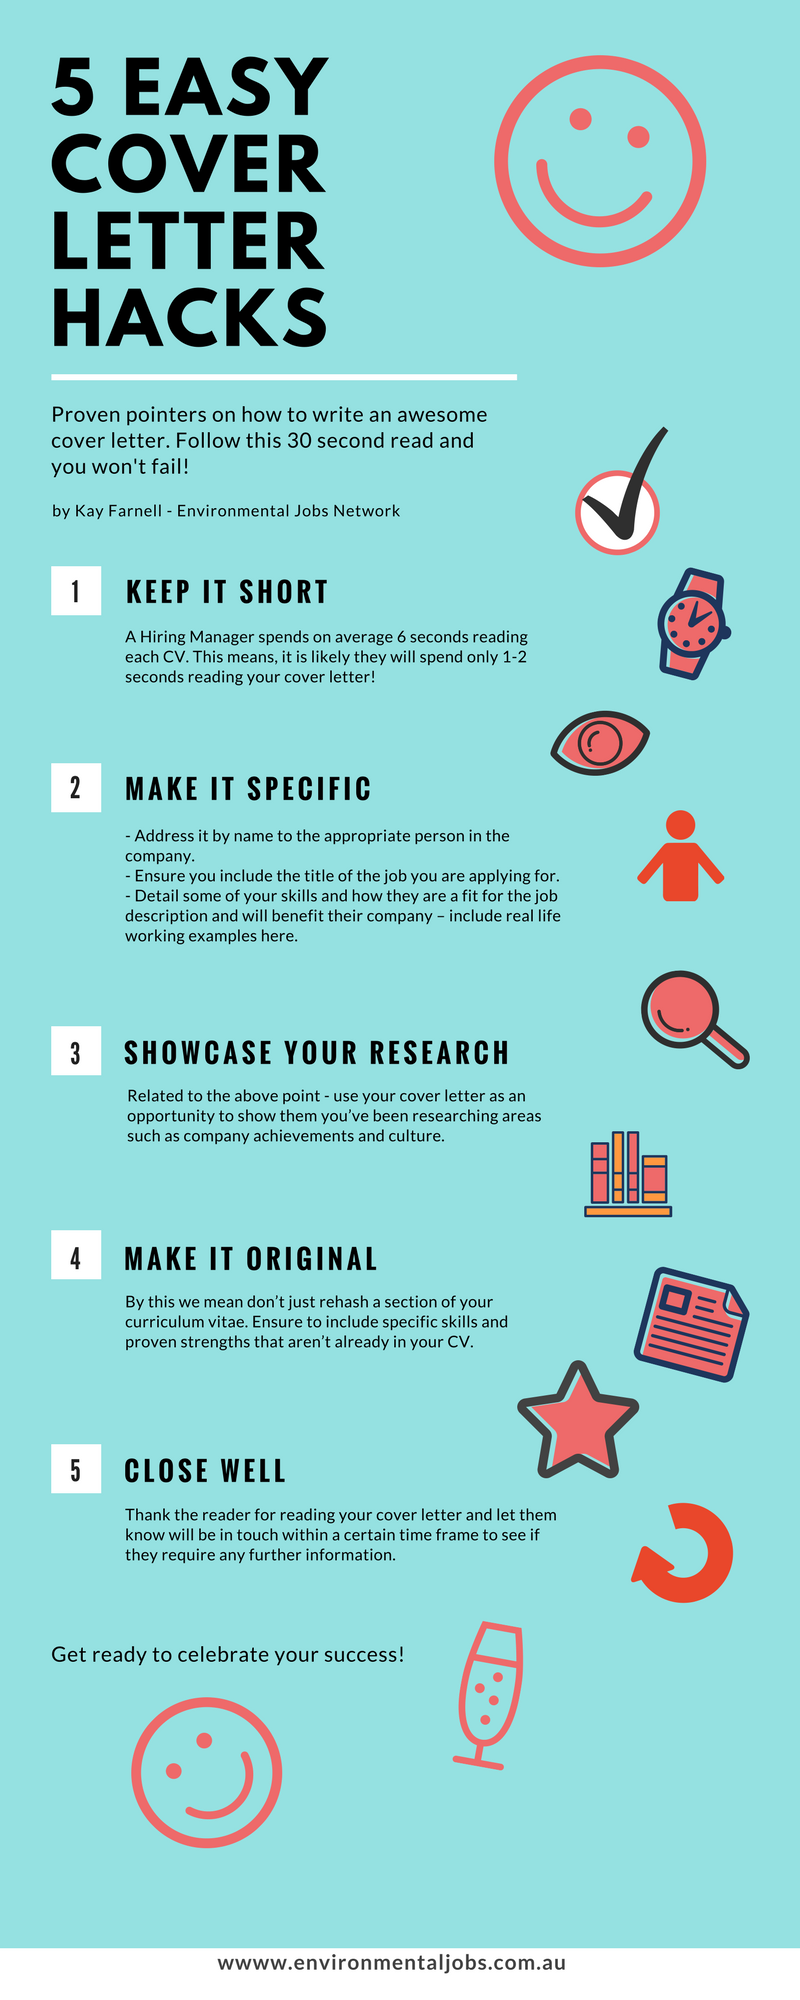 How To Write A Cover Letter The Easy Way - Free Infographic